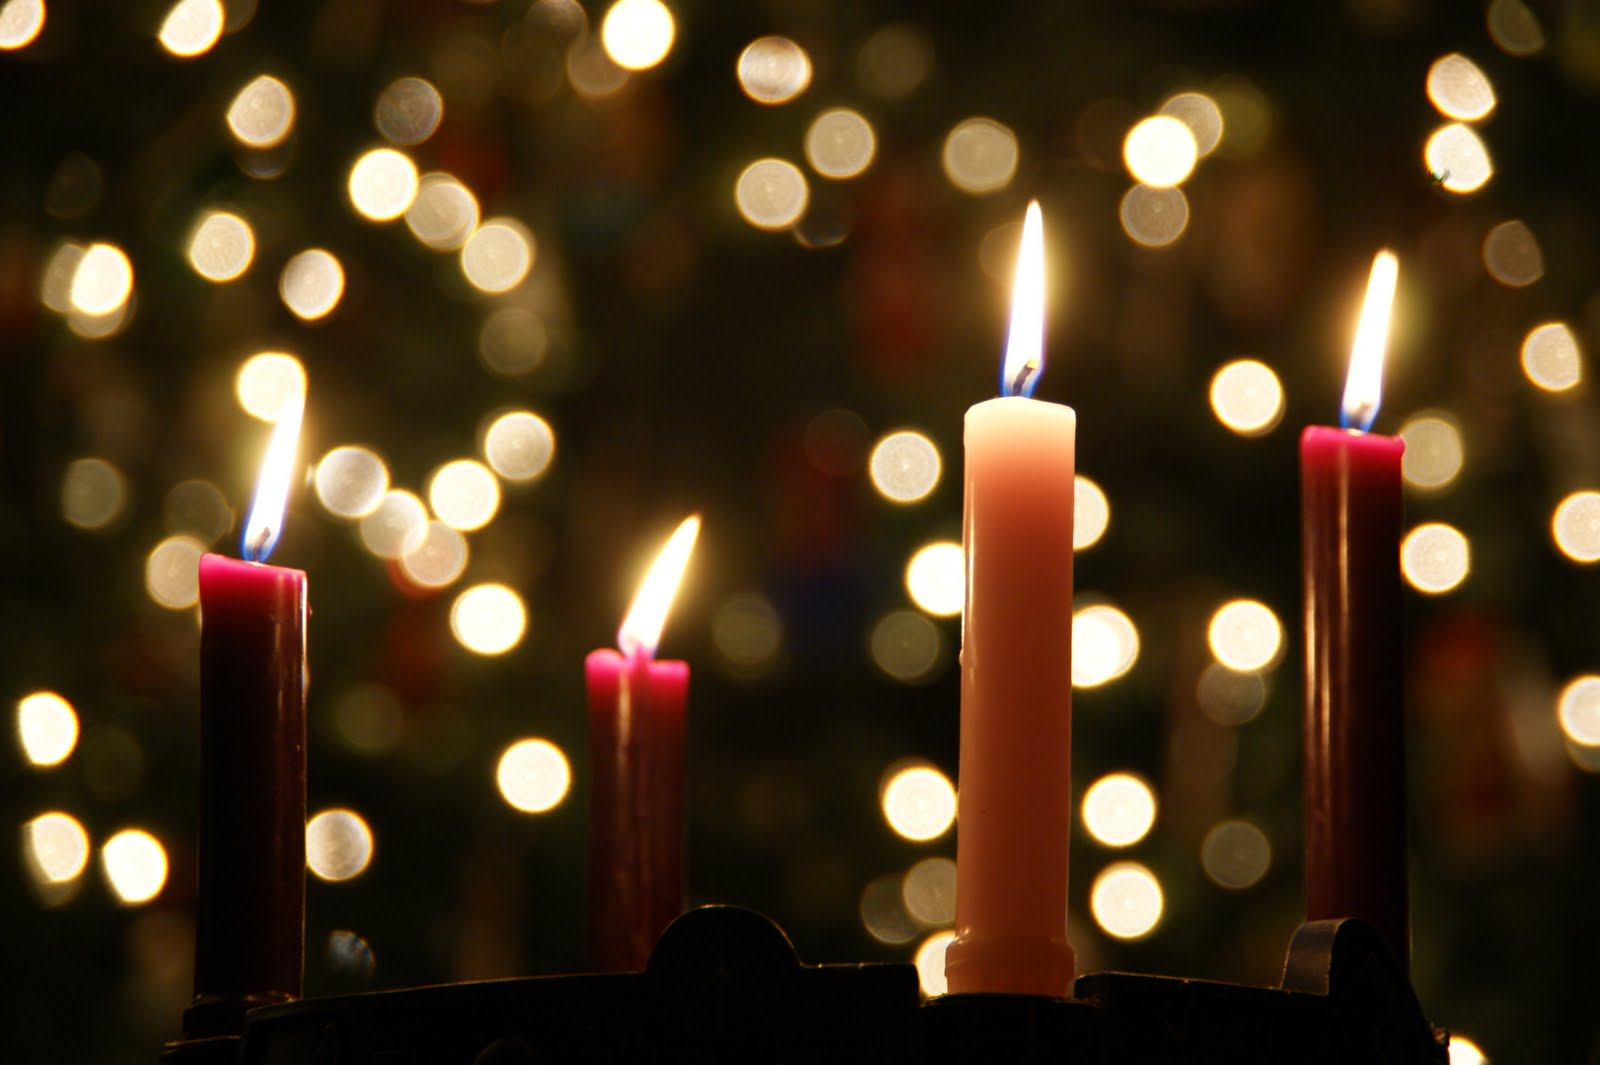 Popular among Western Christians, the advent wreath has 3 purple/red candles and 1 pink that are lit during the 4 weeks before Christmas.